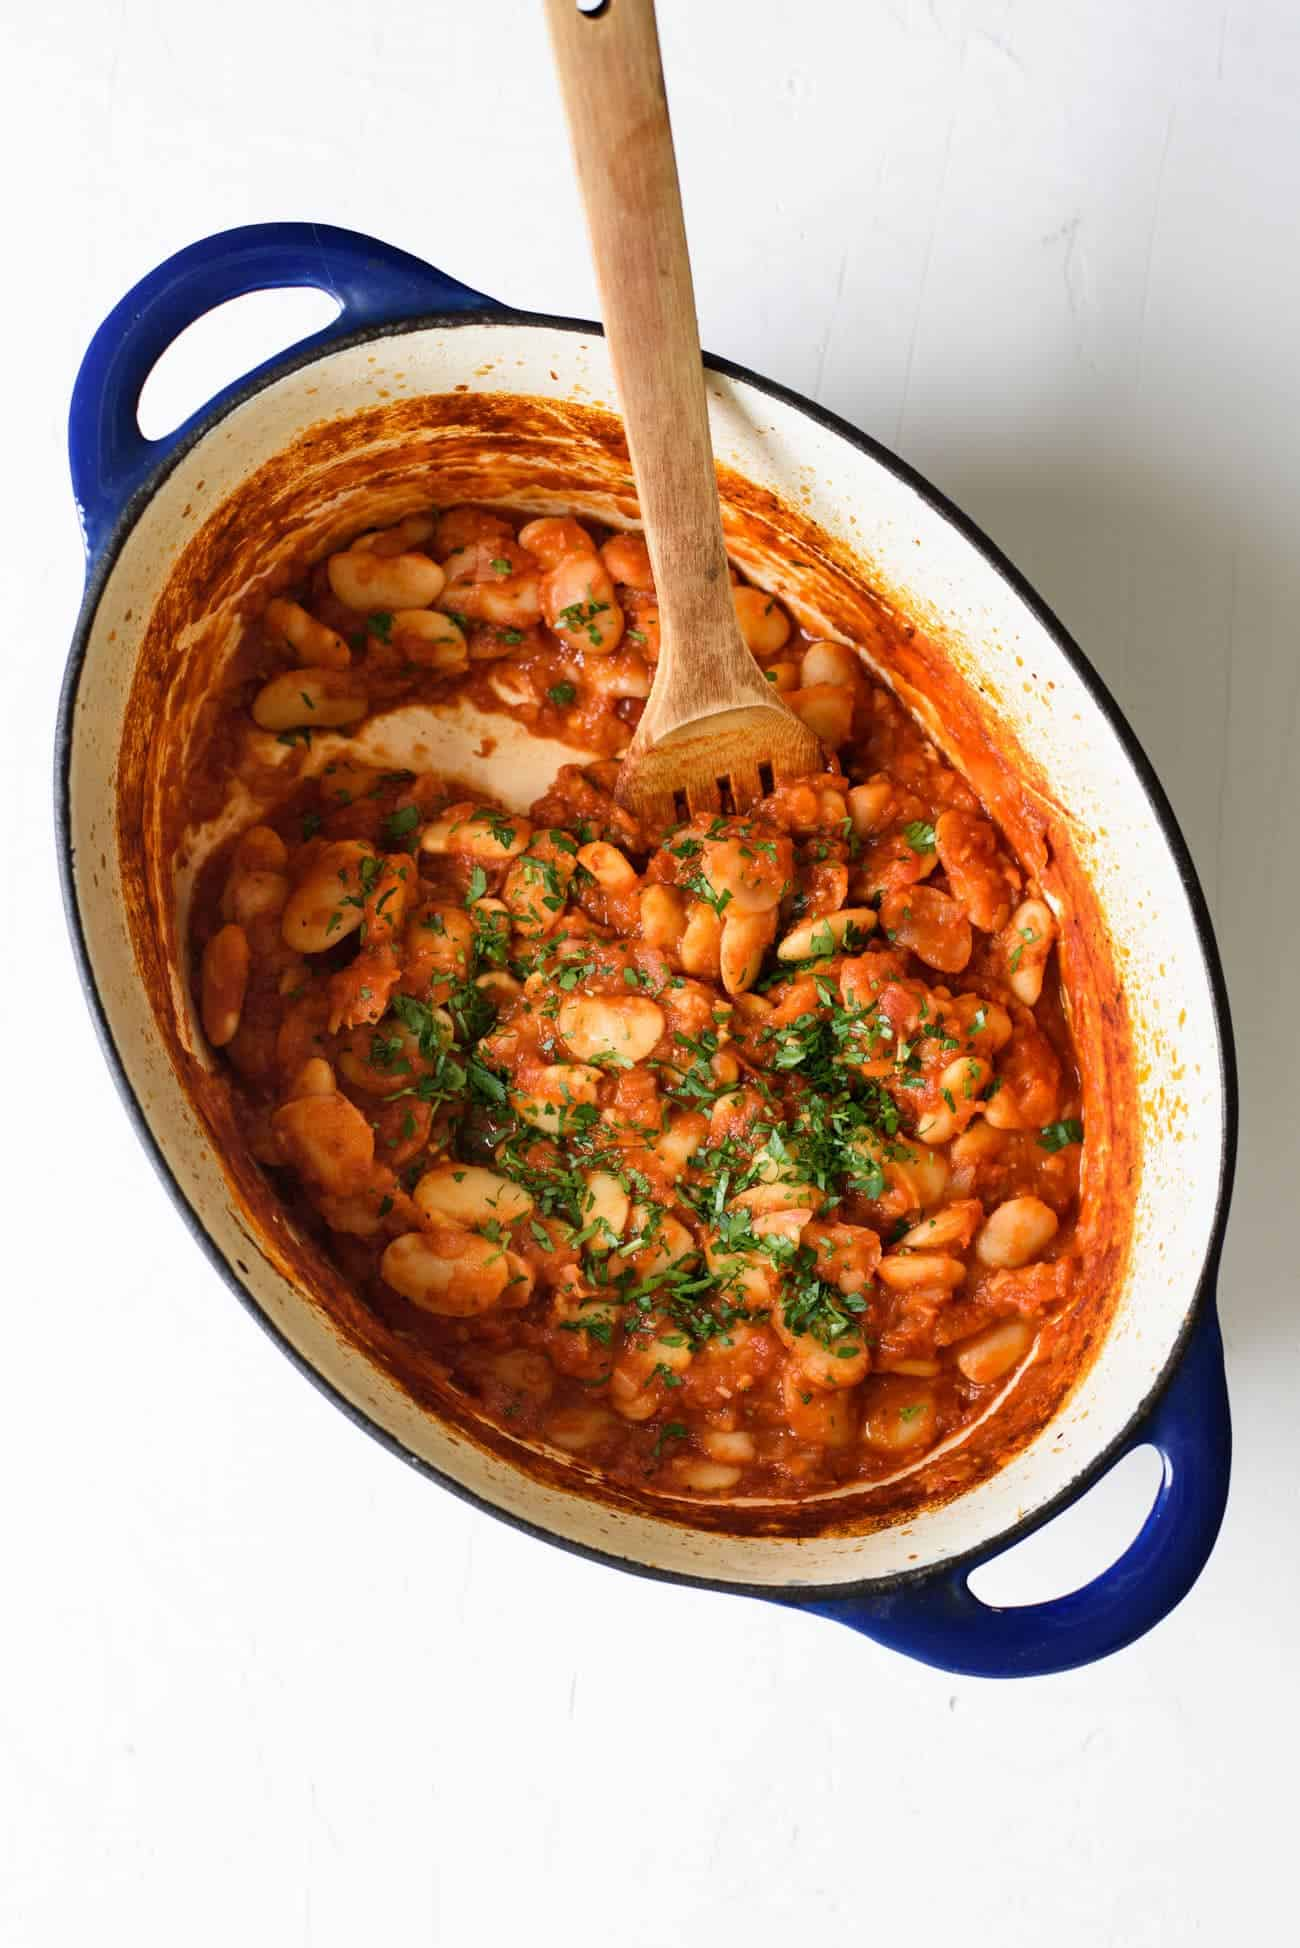 Tomato braised beans in a blue Dutch oven